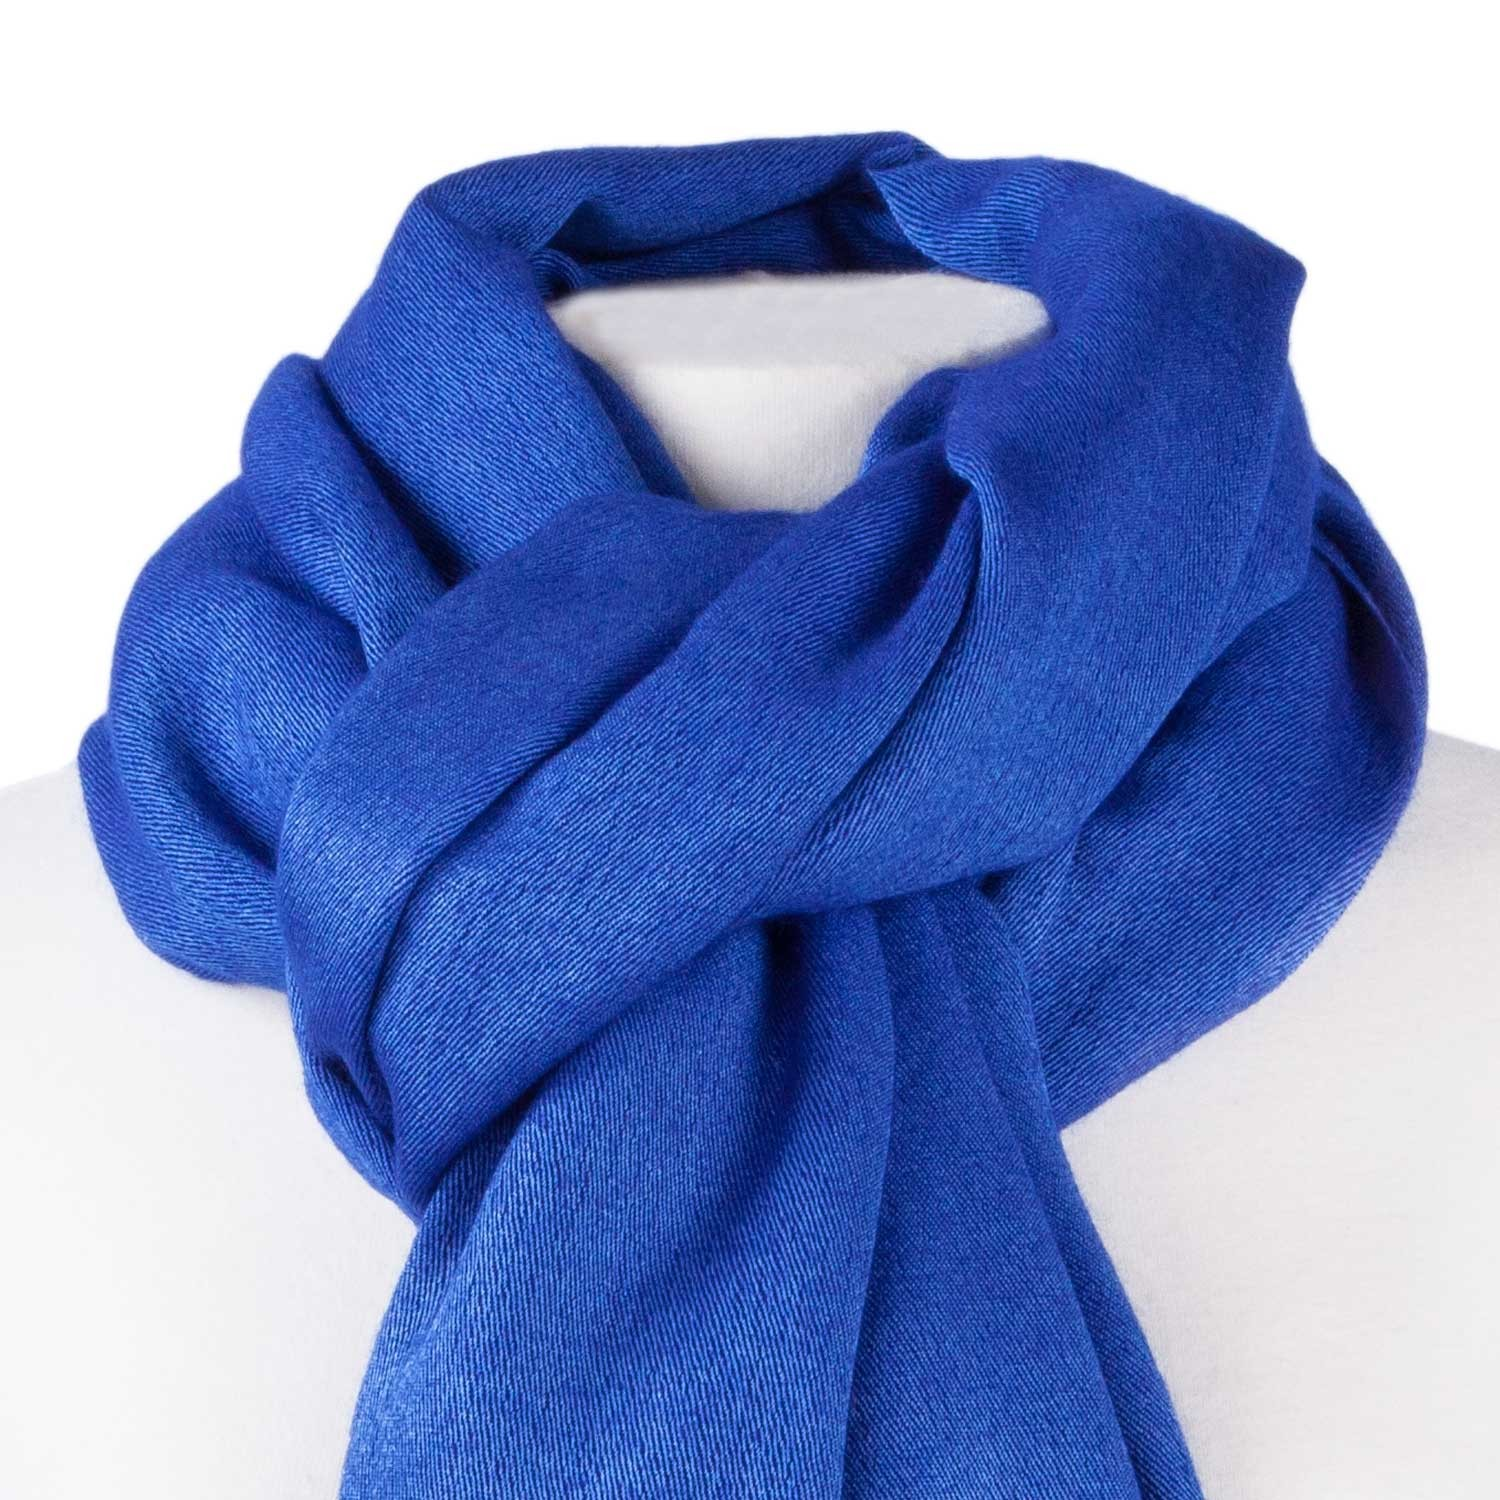 50% silk 50% cashmere pashmina close up of fabric ( lapis colourway)50% uwyrdya